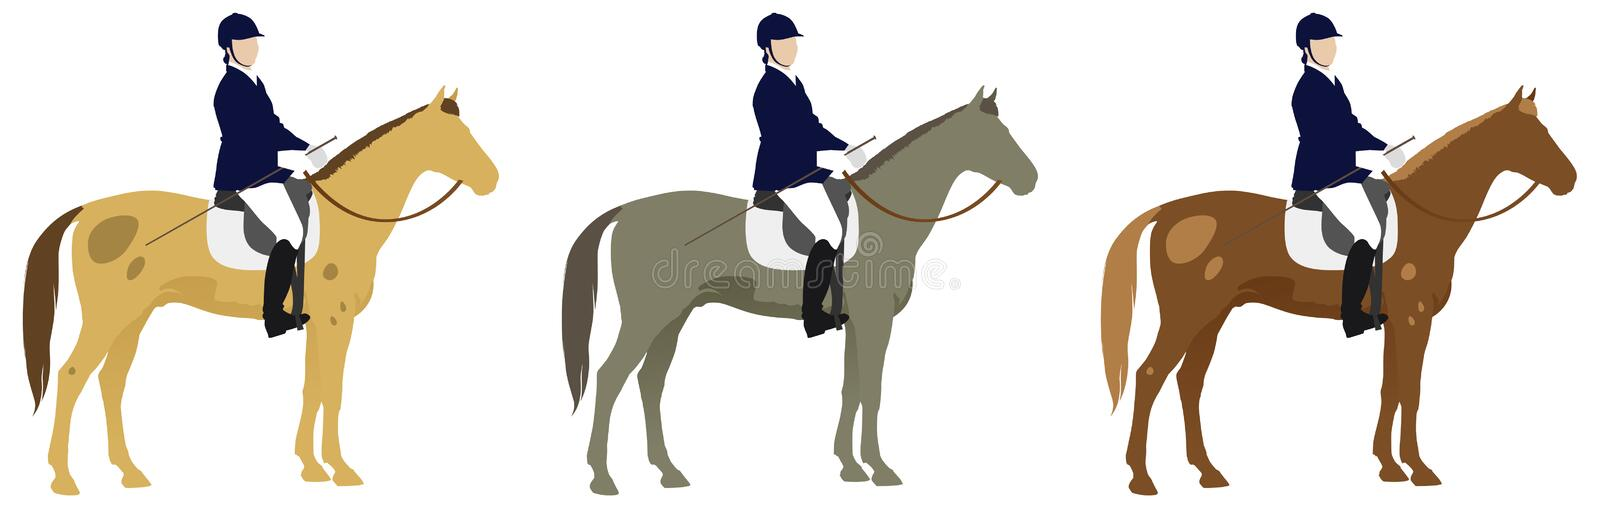 Horse riders stock illustration